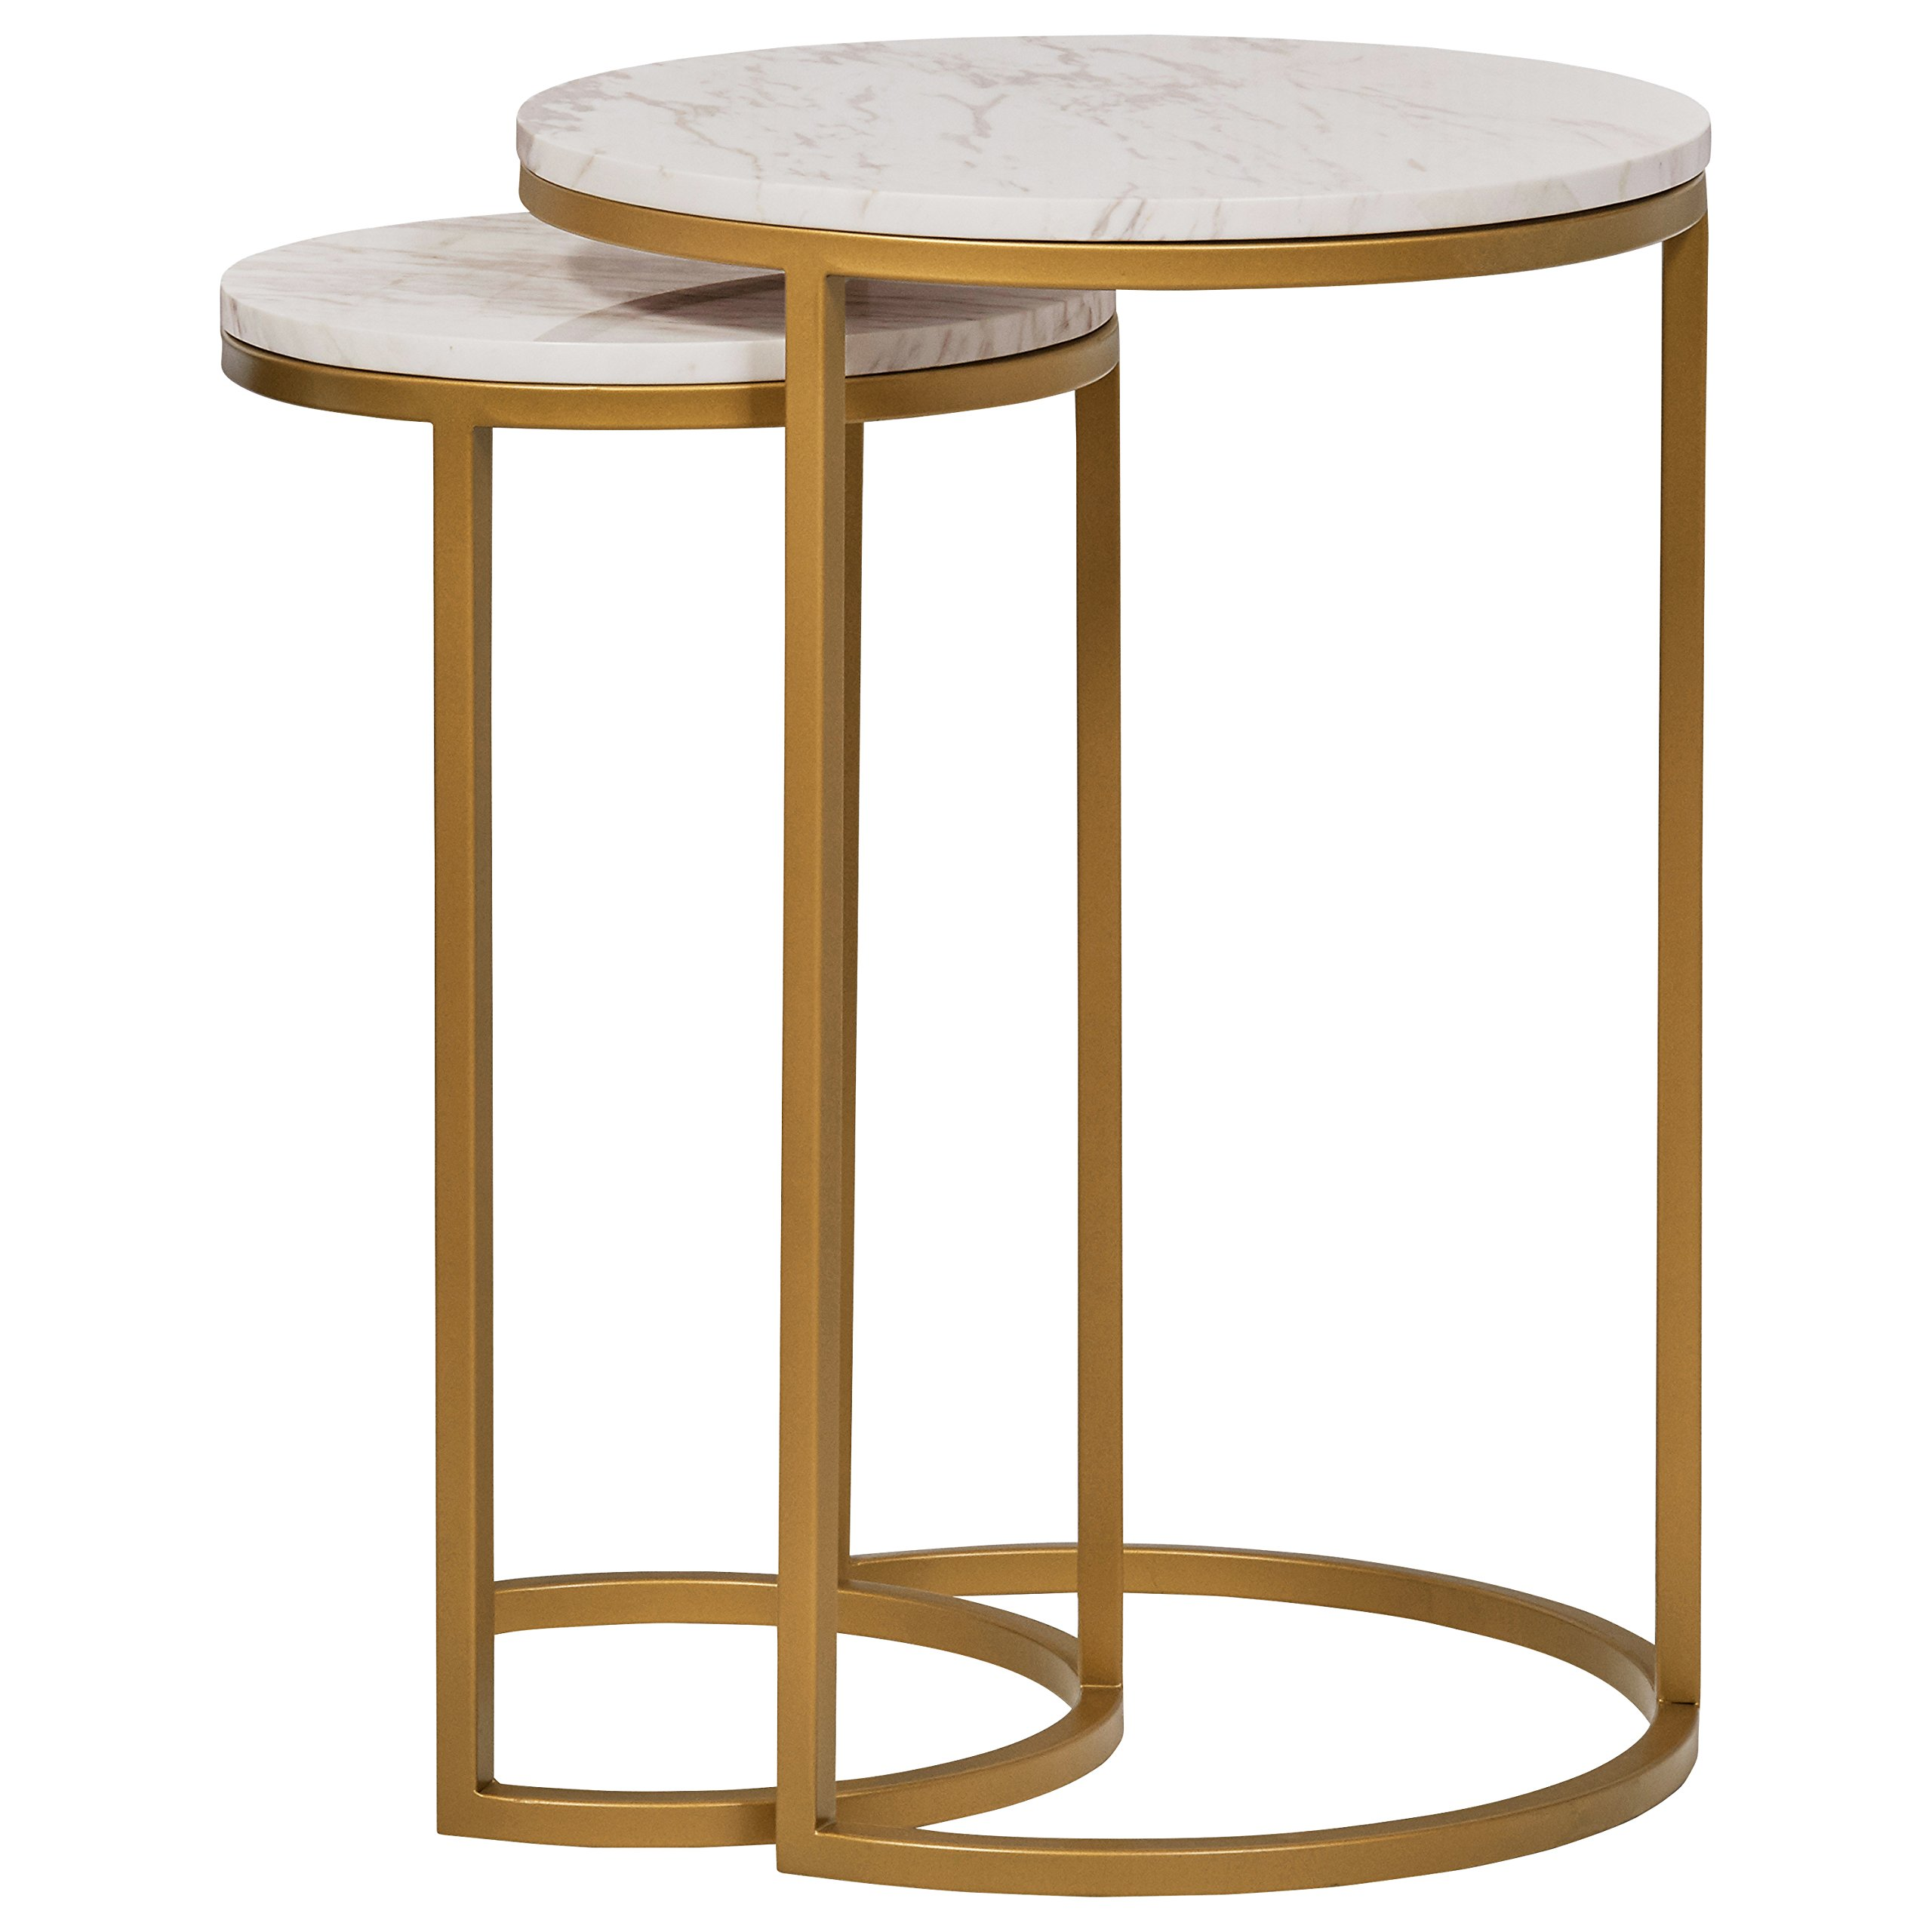 Rivet Circular Modern Marble and Gold Nesting Side Table, Set of 2, Marble/Gold by Rivet (Image #3)